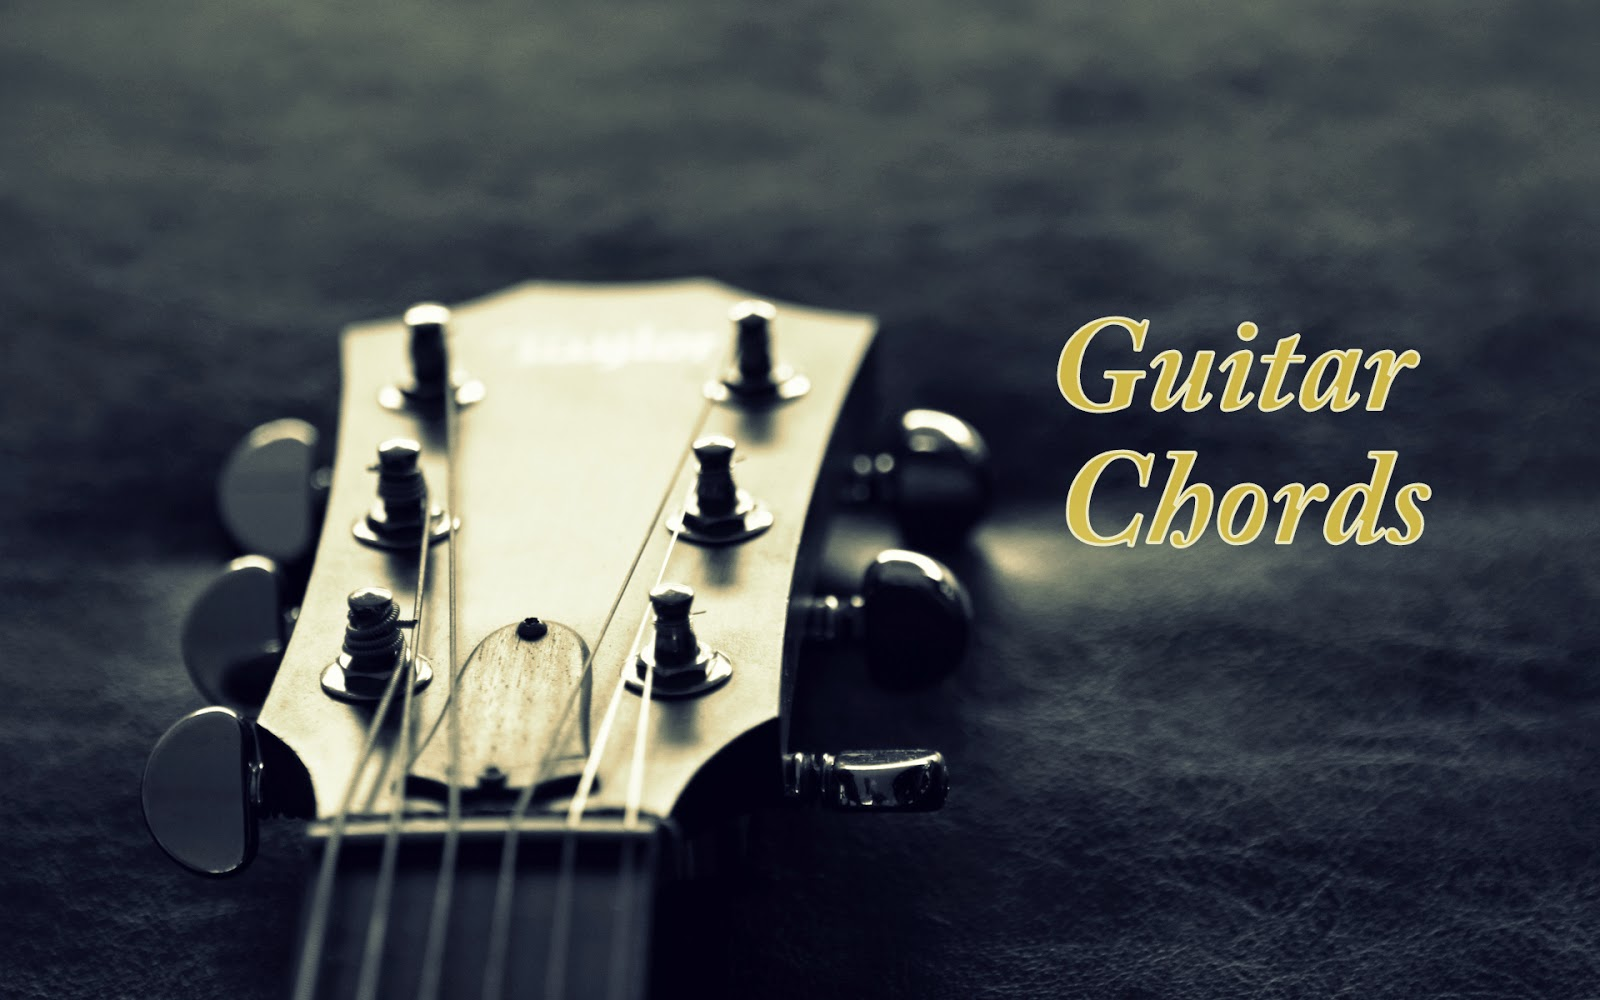 Guitar Chords for Tujhe Bhula Diya